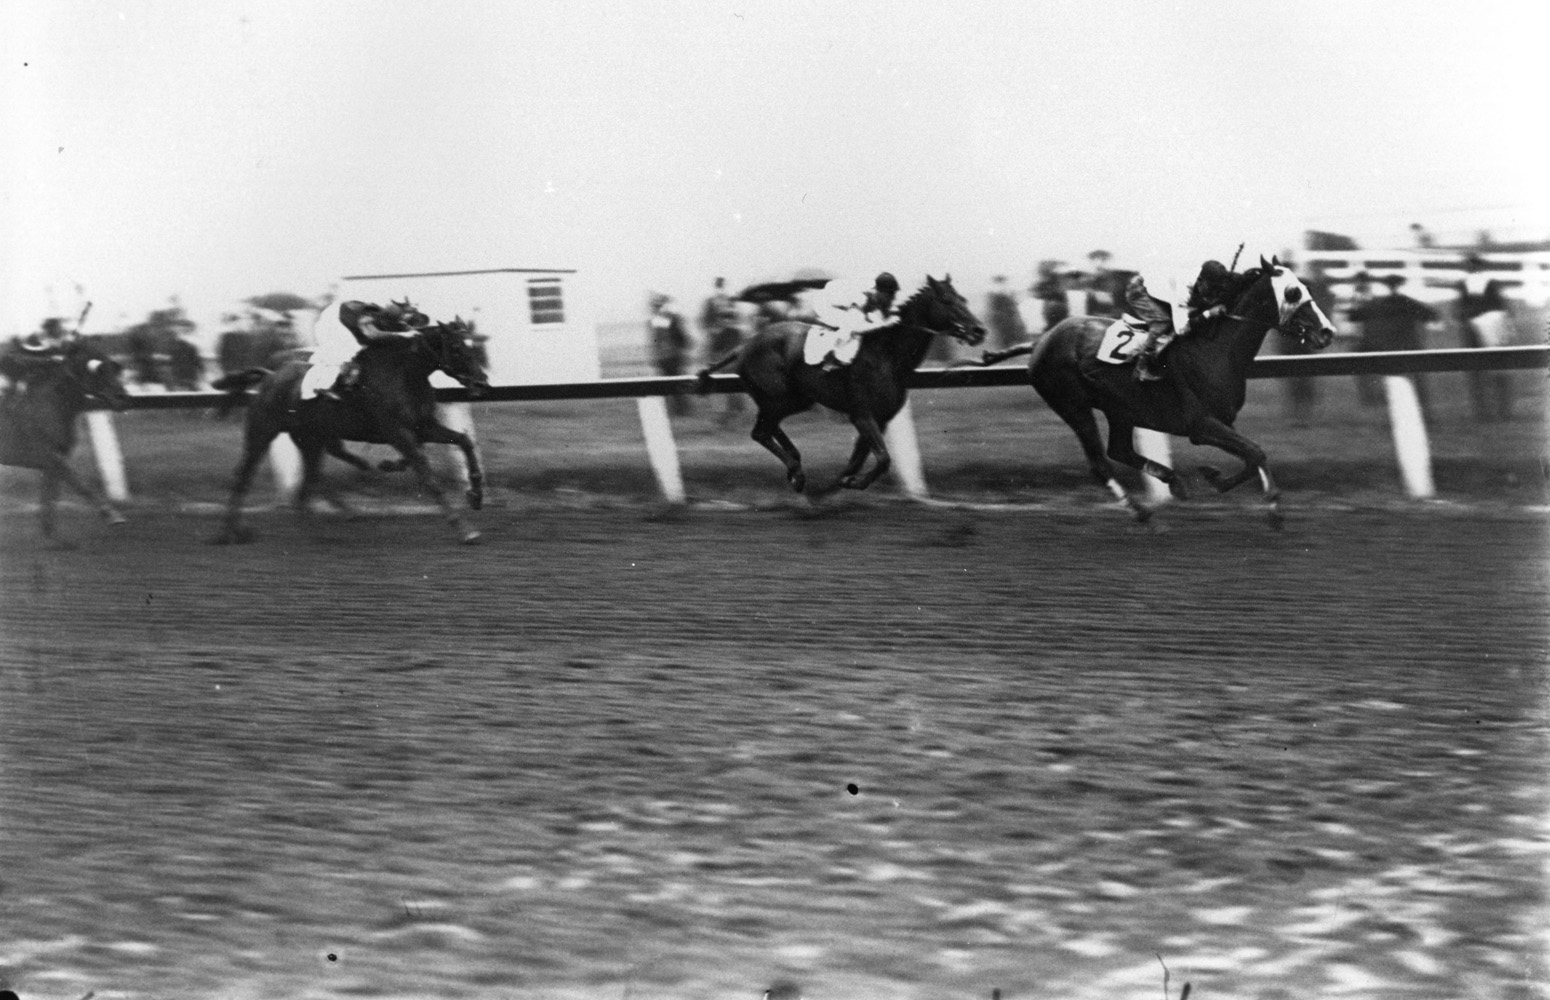 Laverne Fator and Grey Lag defeating Hall of Fame horses John P. Grier and Exterminator in the 1921 Brooklyn Handicap at Aqueduct (Keeneland Library Cook Collection/Museum Collection)